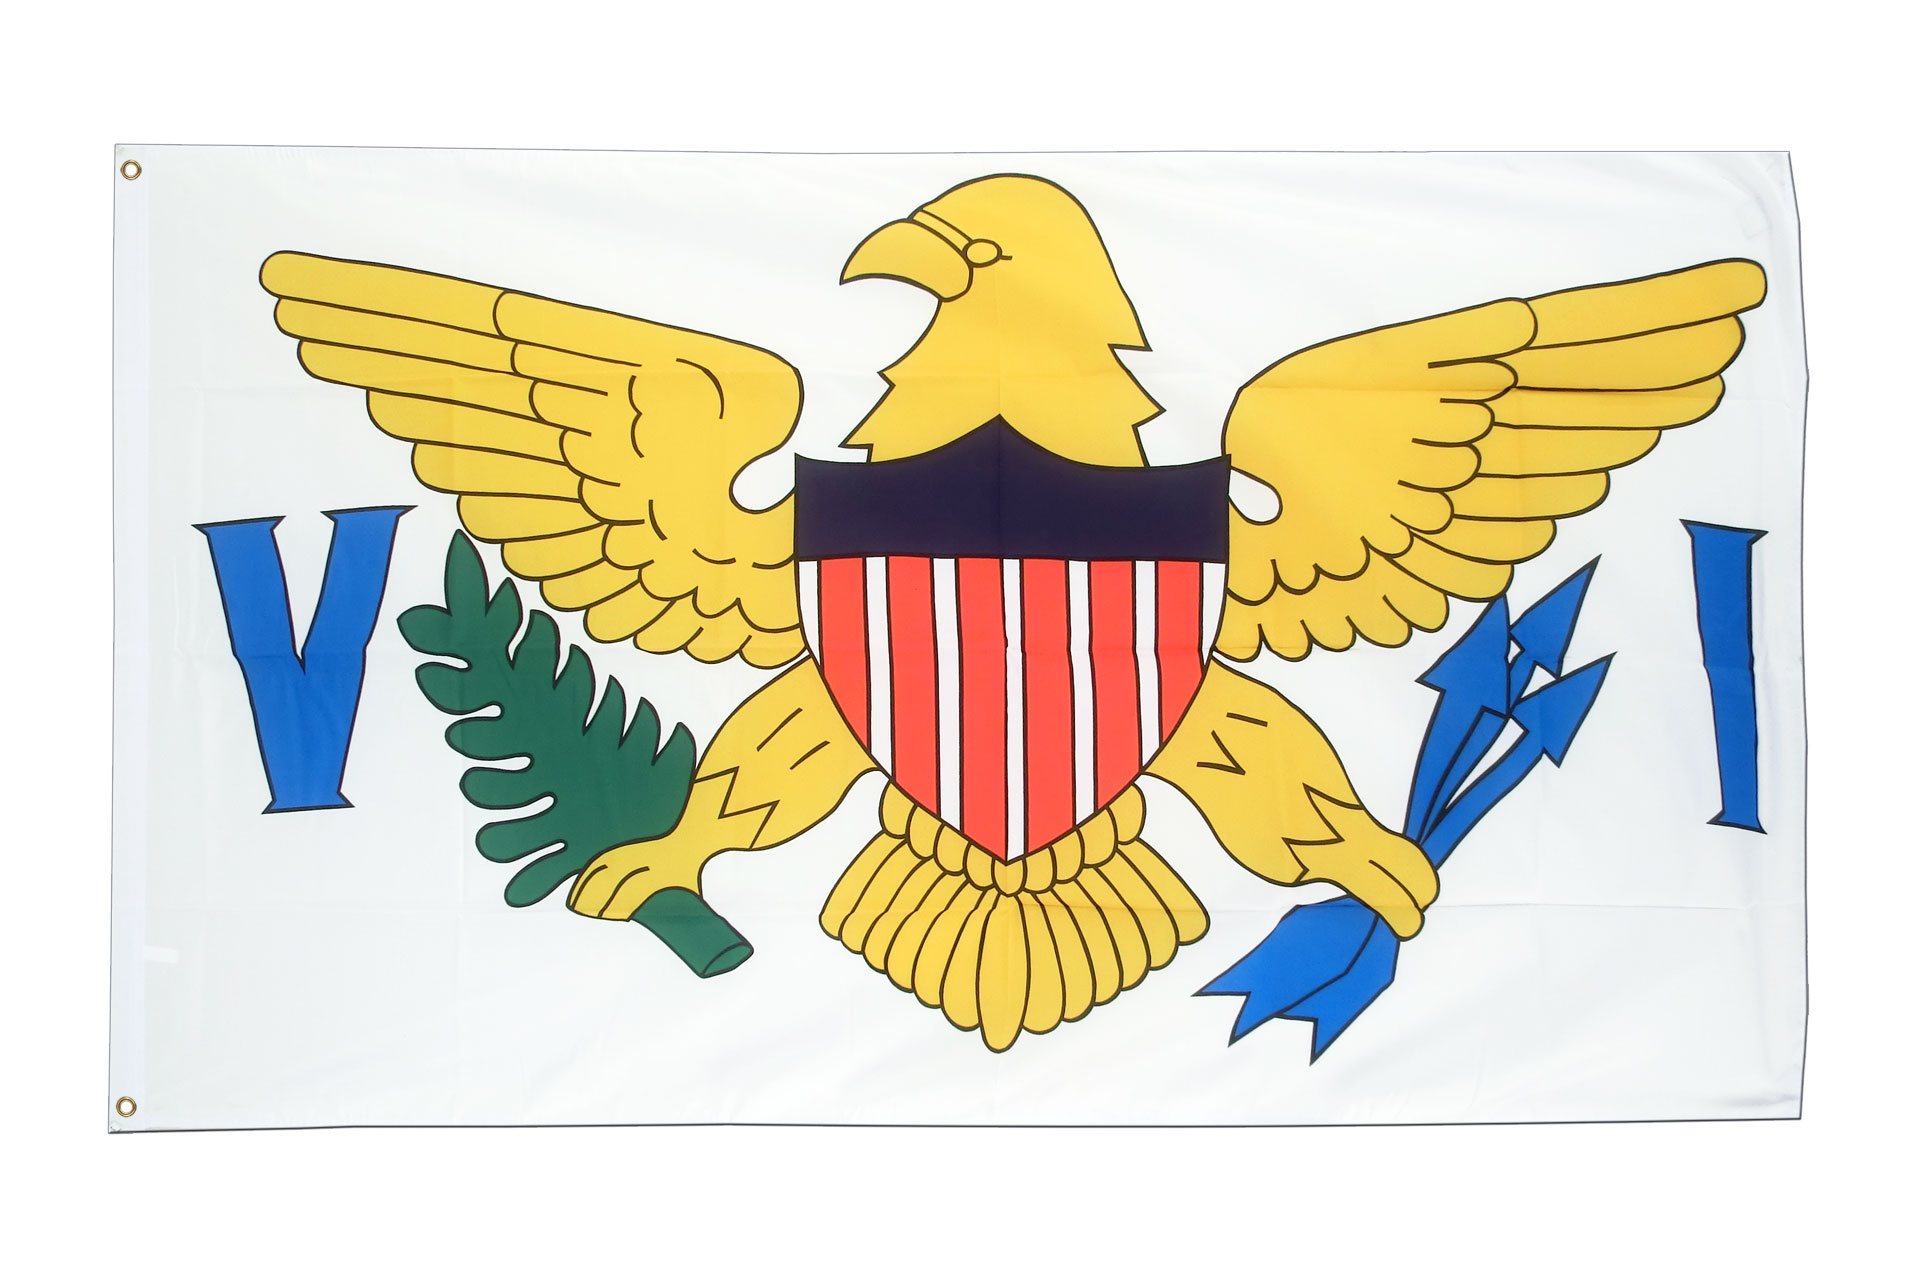 Buy Virgin Islands Flag - 3x5 ft (90x150 cm) - Royal-Flags: https://www.royal-flags.co.uk/virgin-islands-flag-2100.html